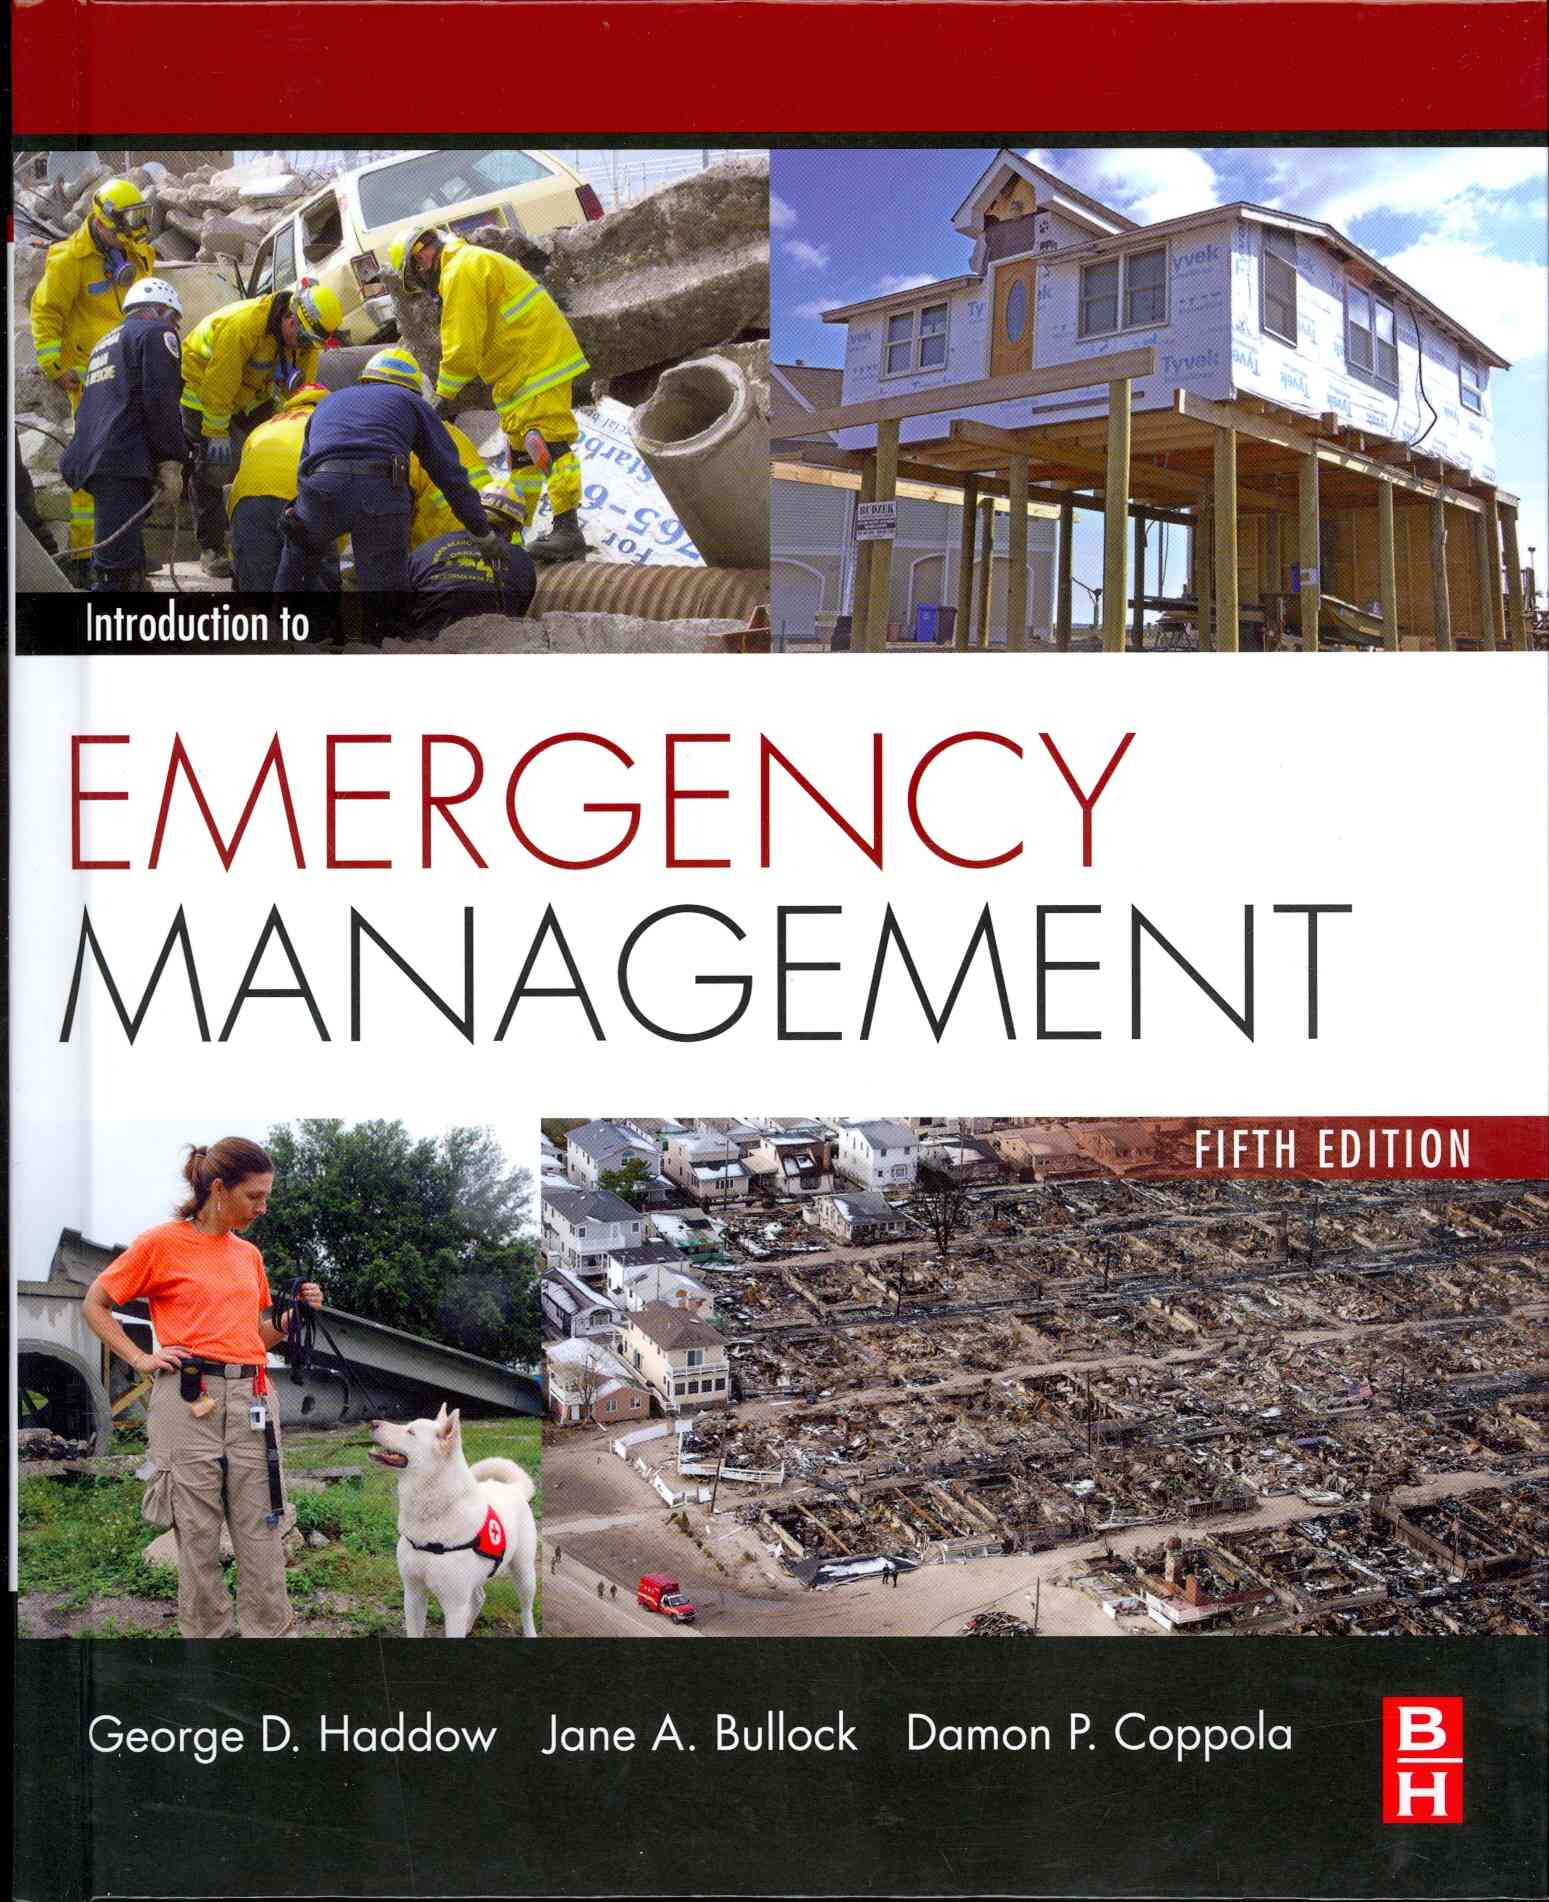 Introduction to Emergency Management By Haddow, George/ Bullock, Jane/ Coppola, Damon P.